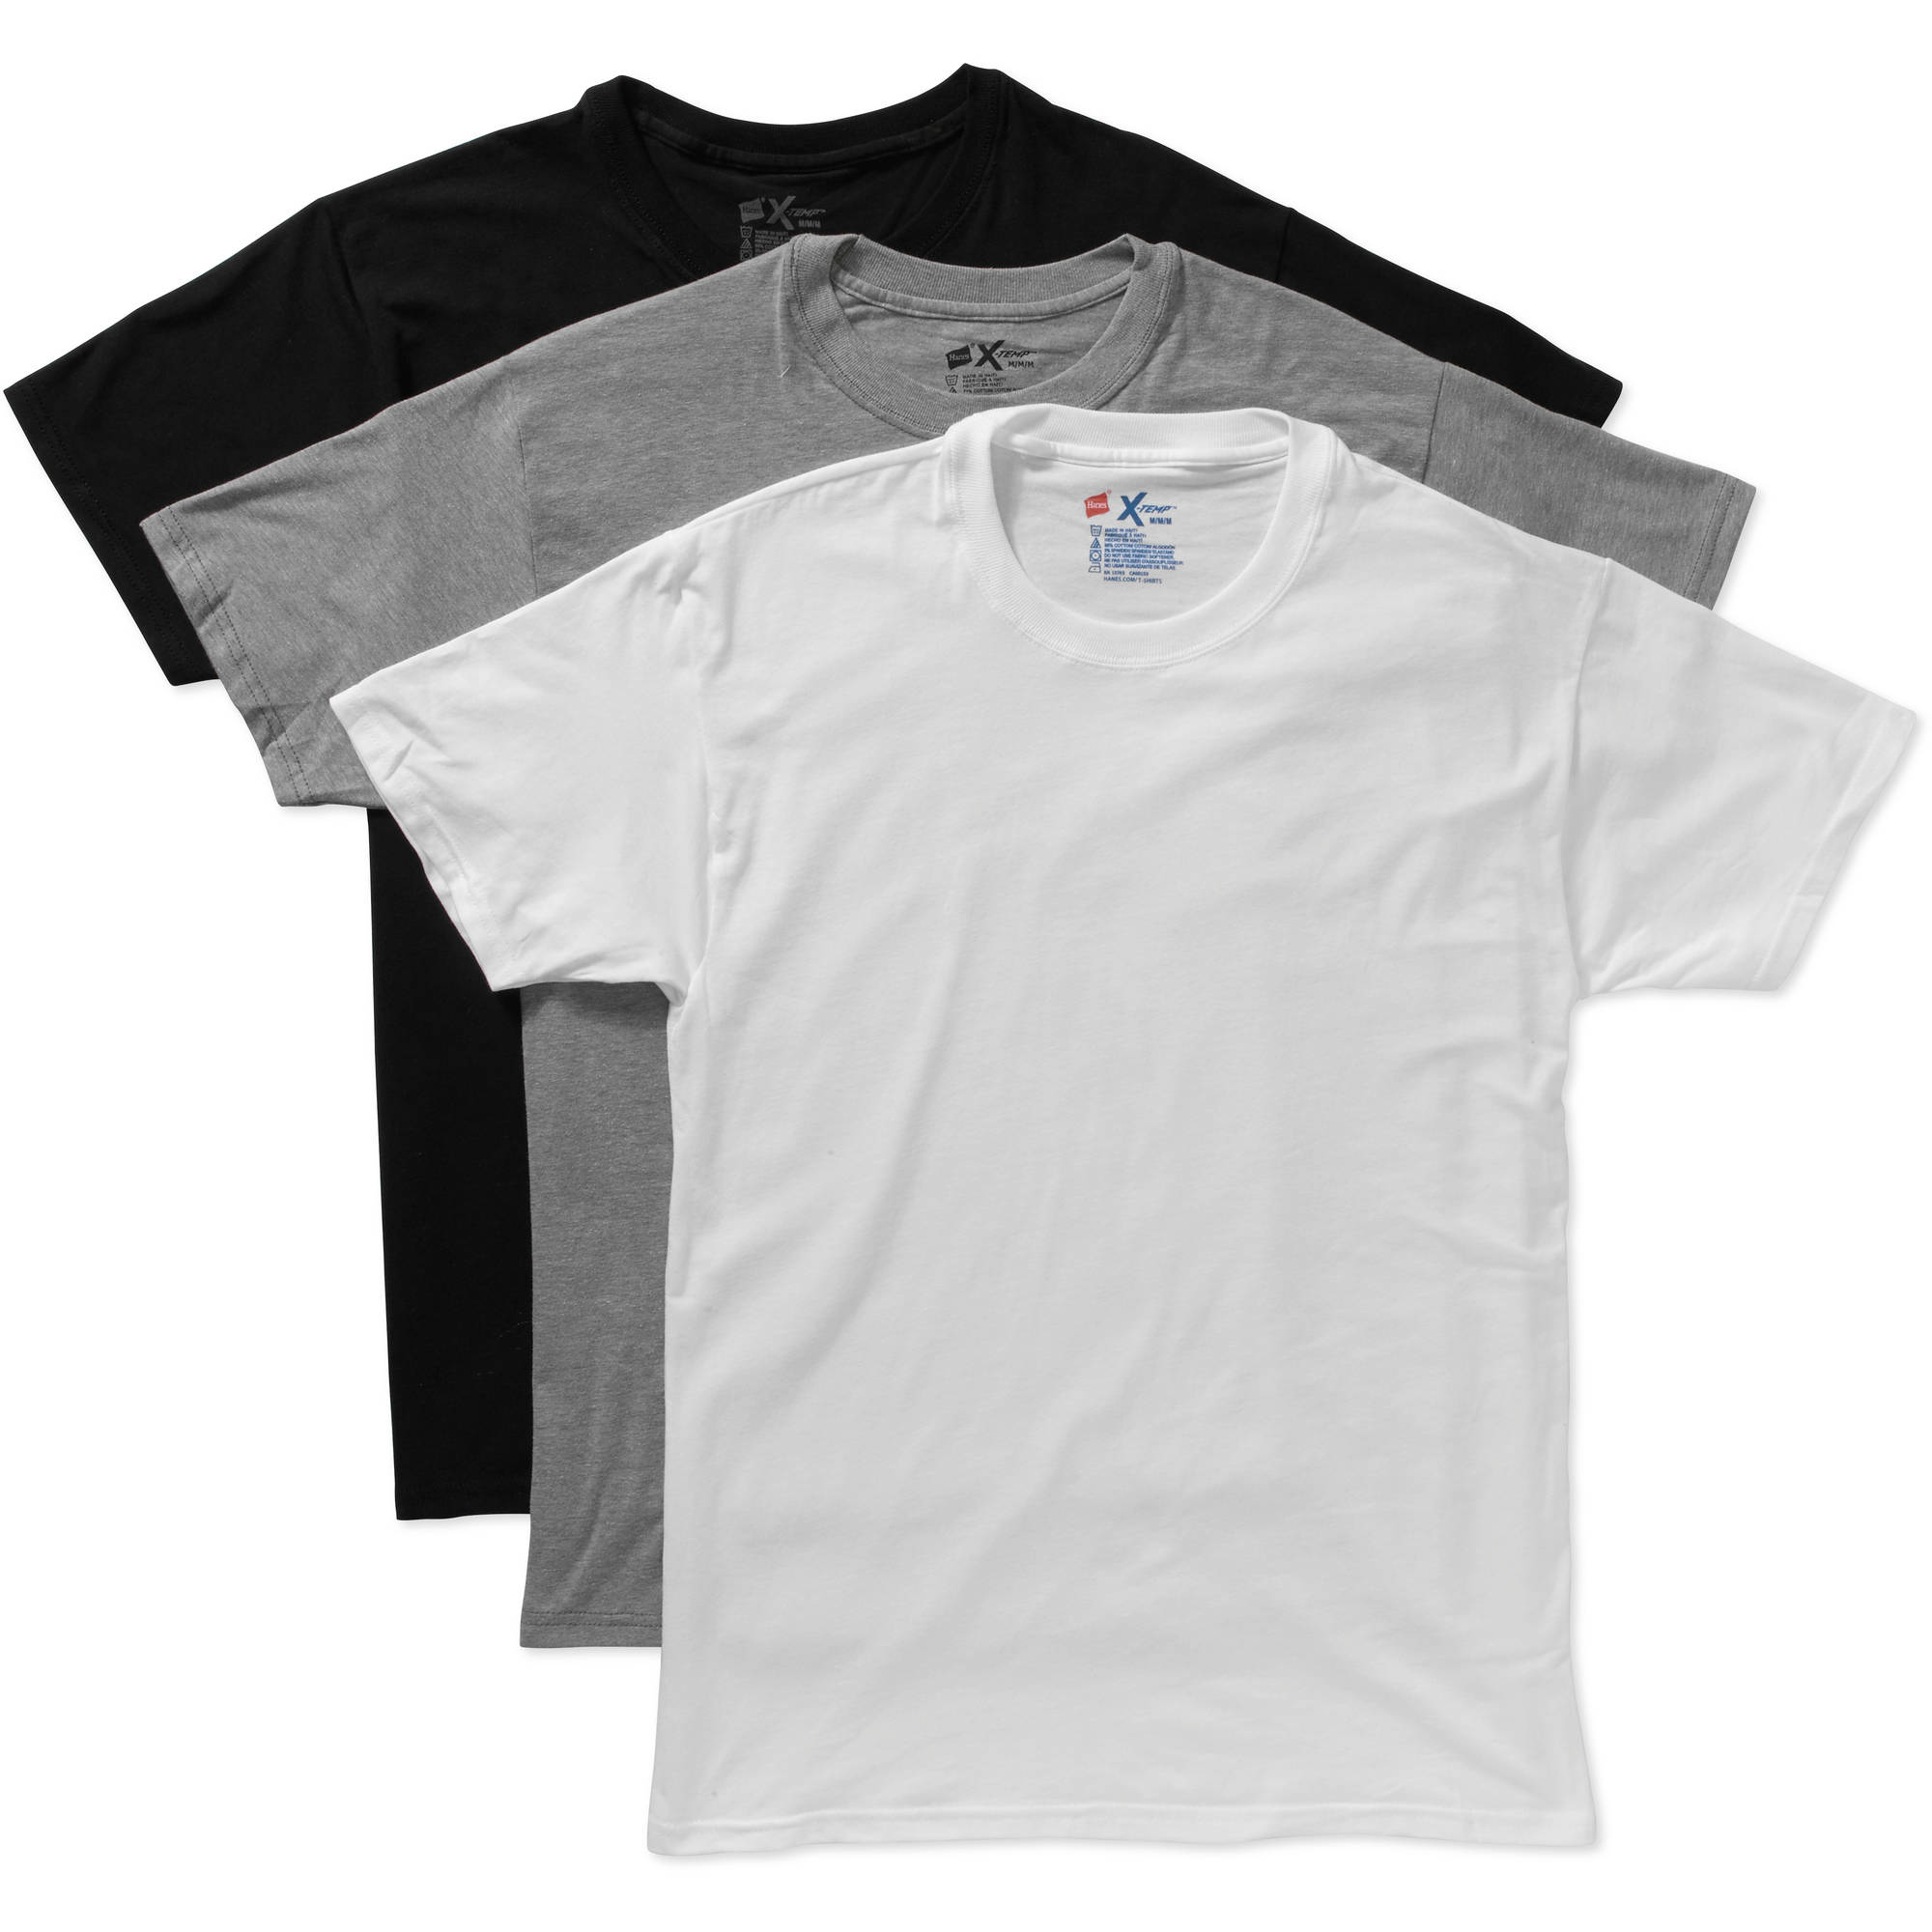 Hanes Men's X-Temp Cotton Stretch Dyed Crew T-Shirts - 3 Pack ...